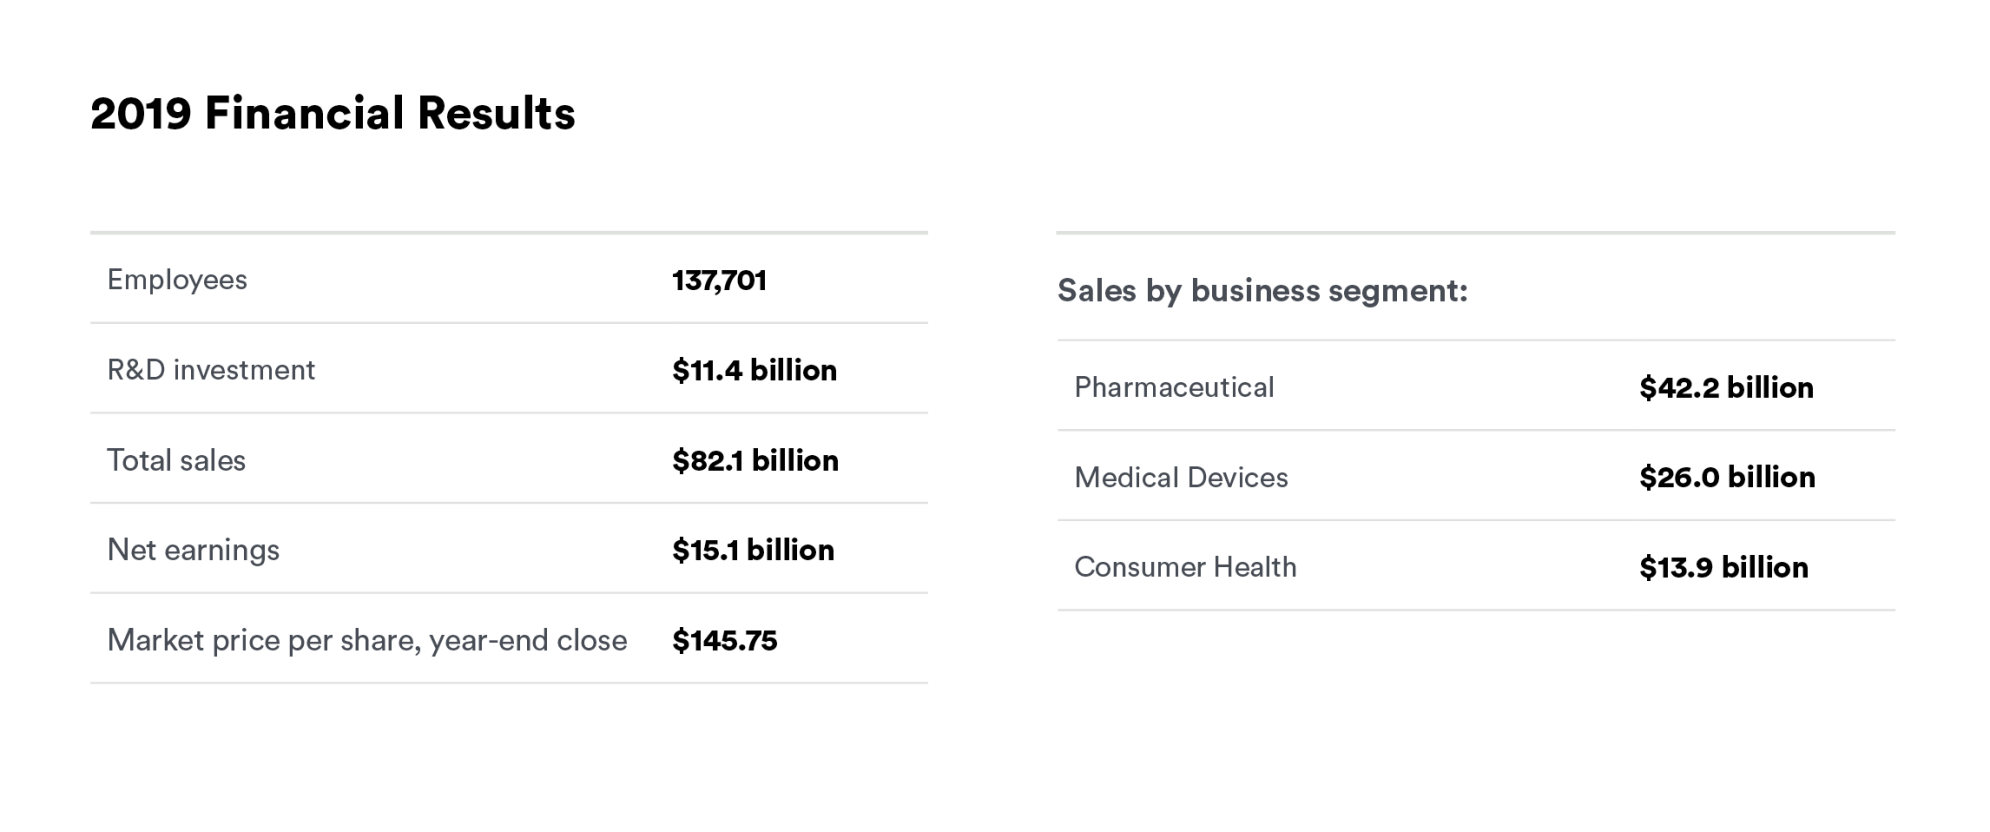 A table of the 2019 Financial Results at Johnson & Johnson